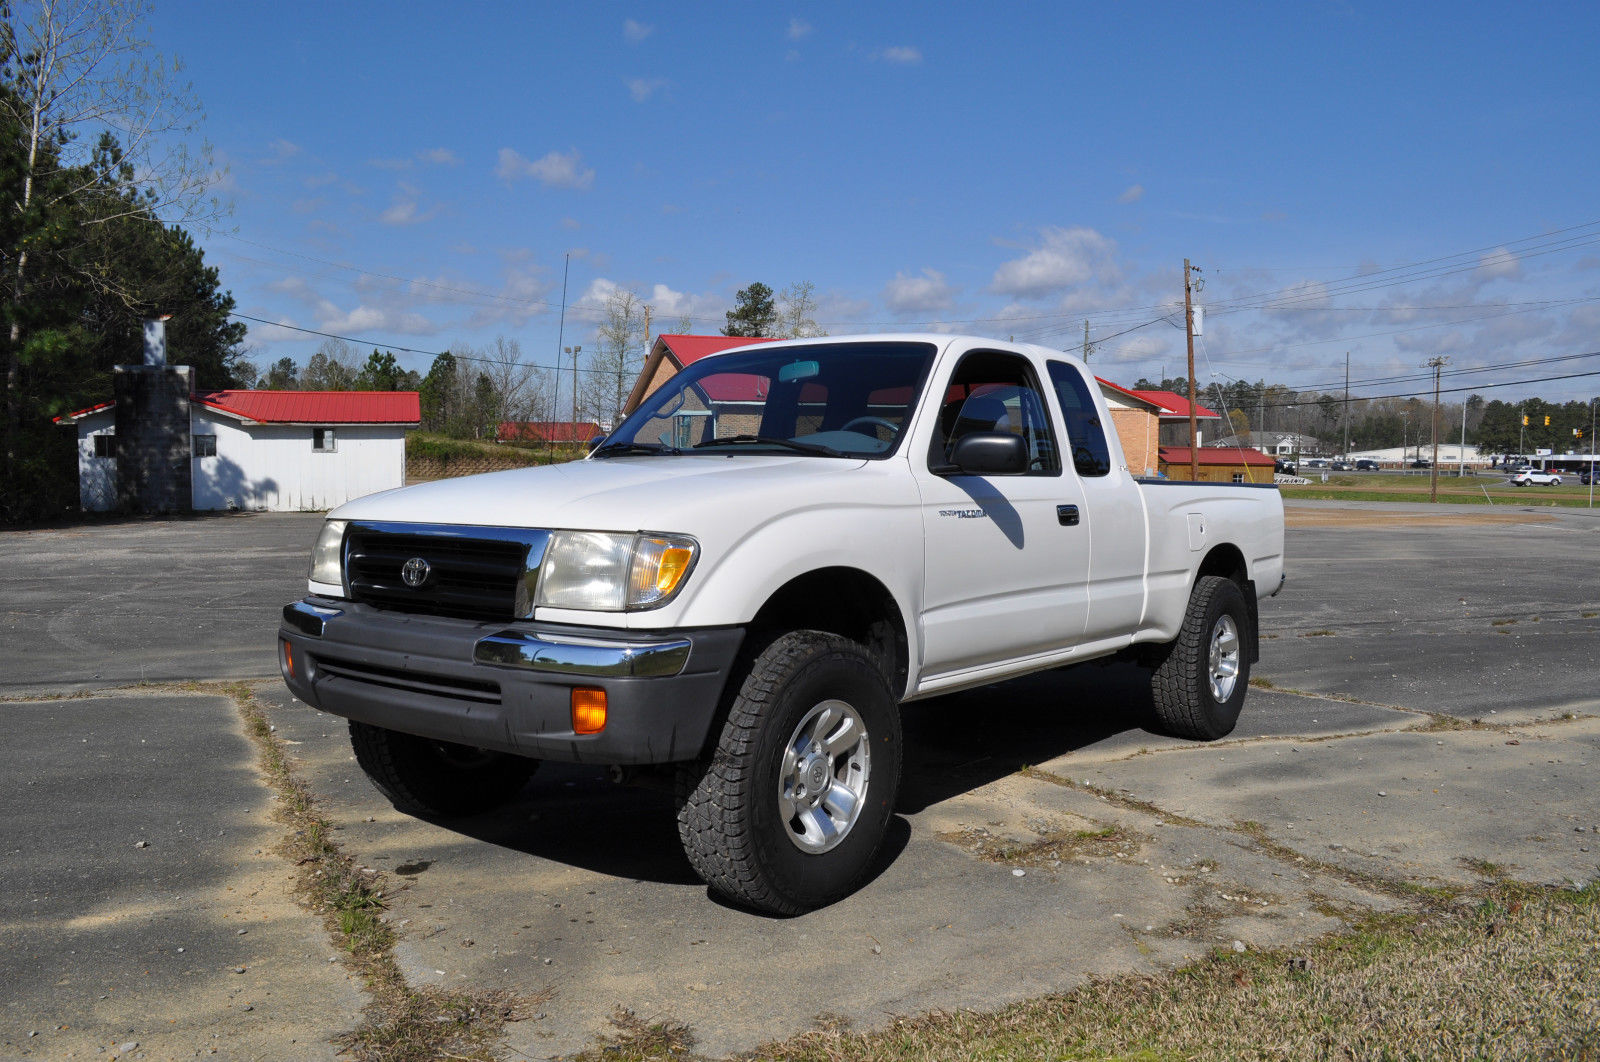 1999 toyota tacoma sr5 prerunner 2 7l for sale. Black Bedroom Furniture Sets. Home Design Ideas